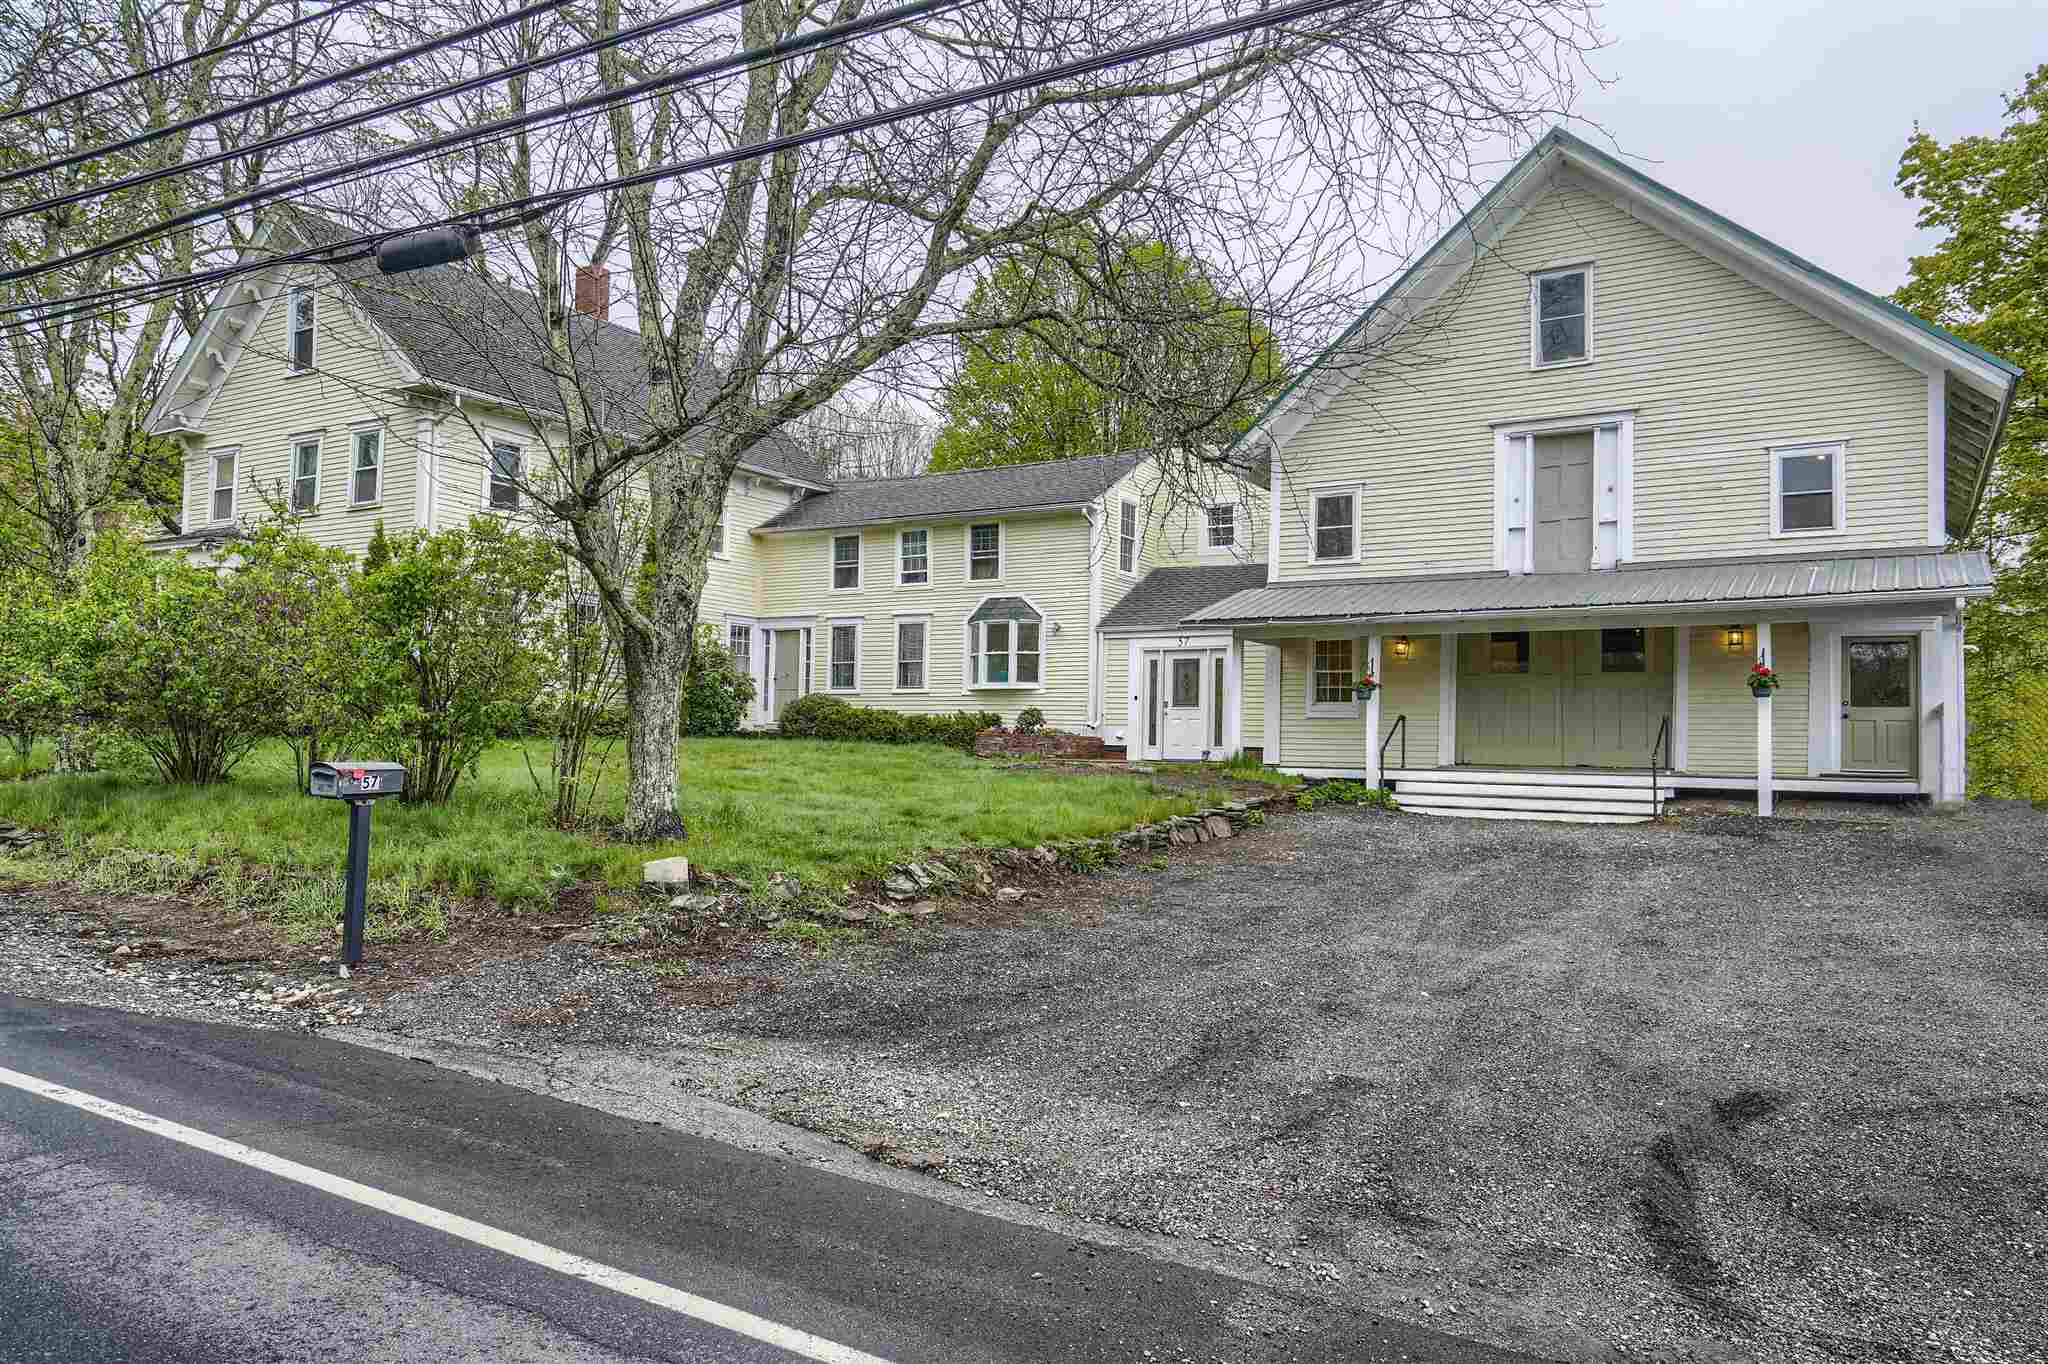 57 Pleasant Street, Epping, NH 03042